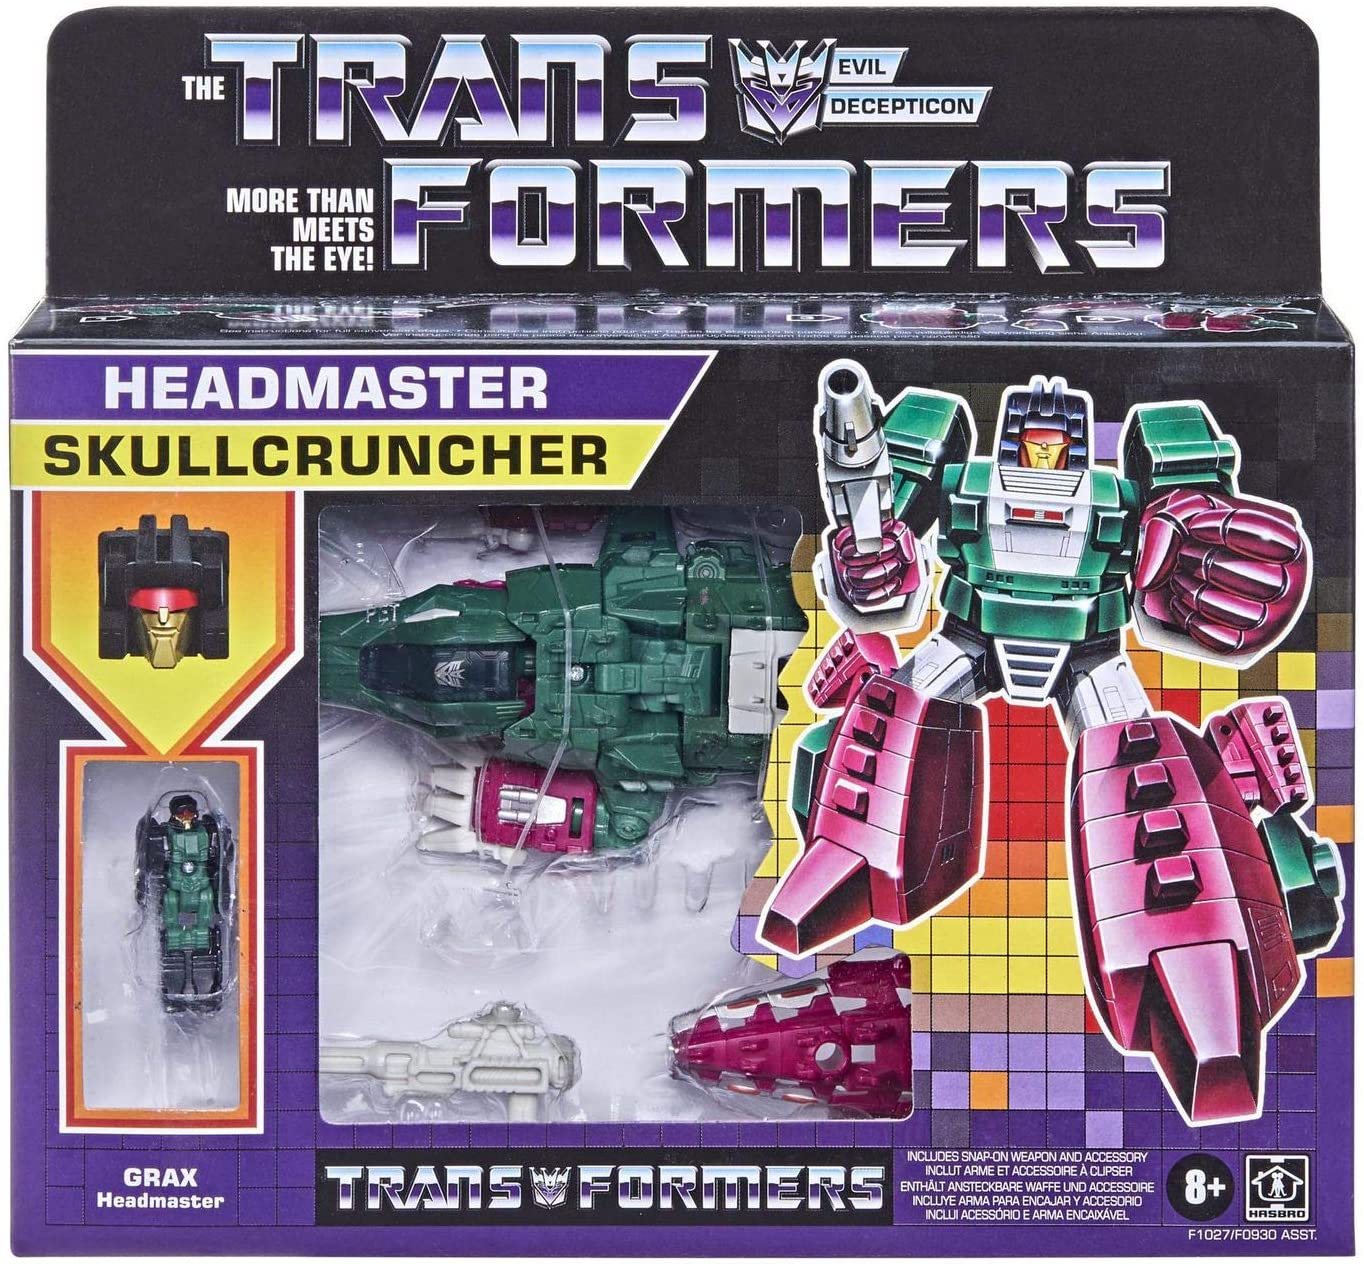 In a popularity Transformers 2021 Modern Figure in He Challenge the lowest price of Japan Retro Decepticon Packaging